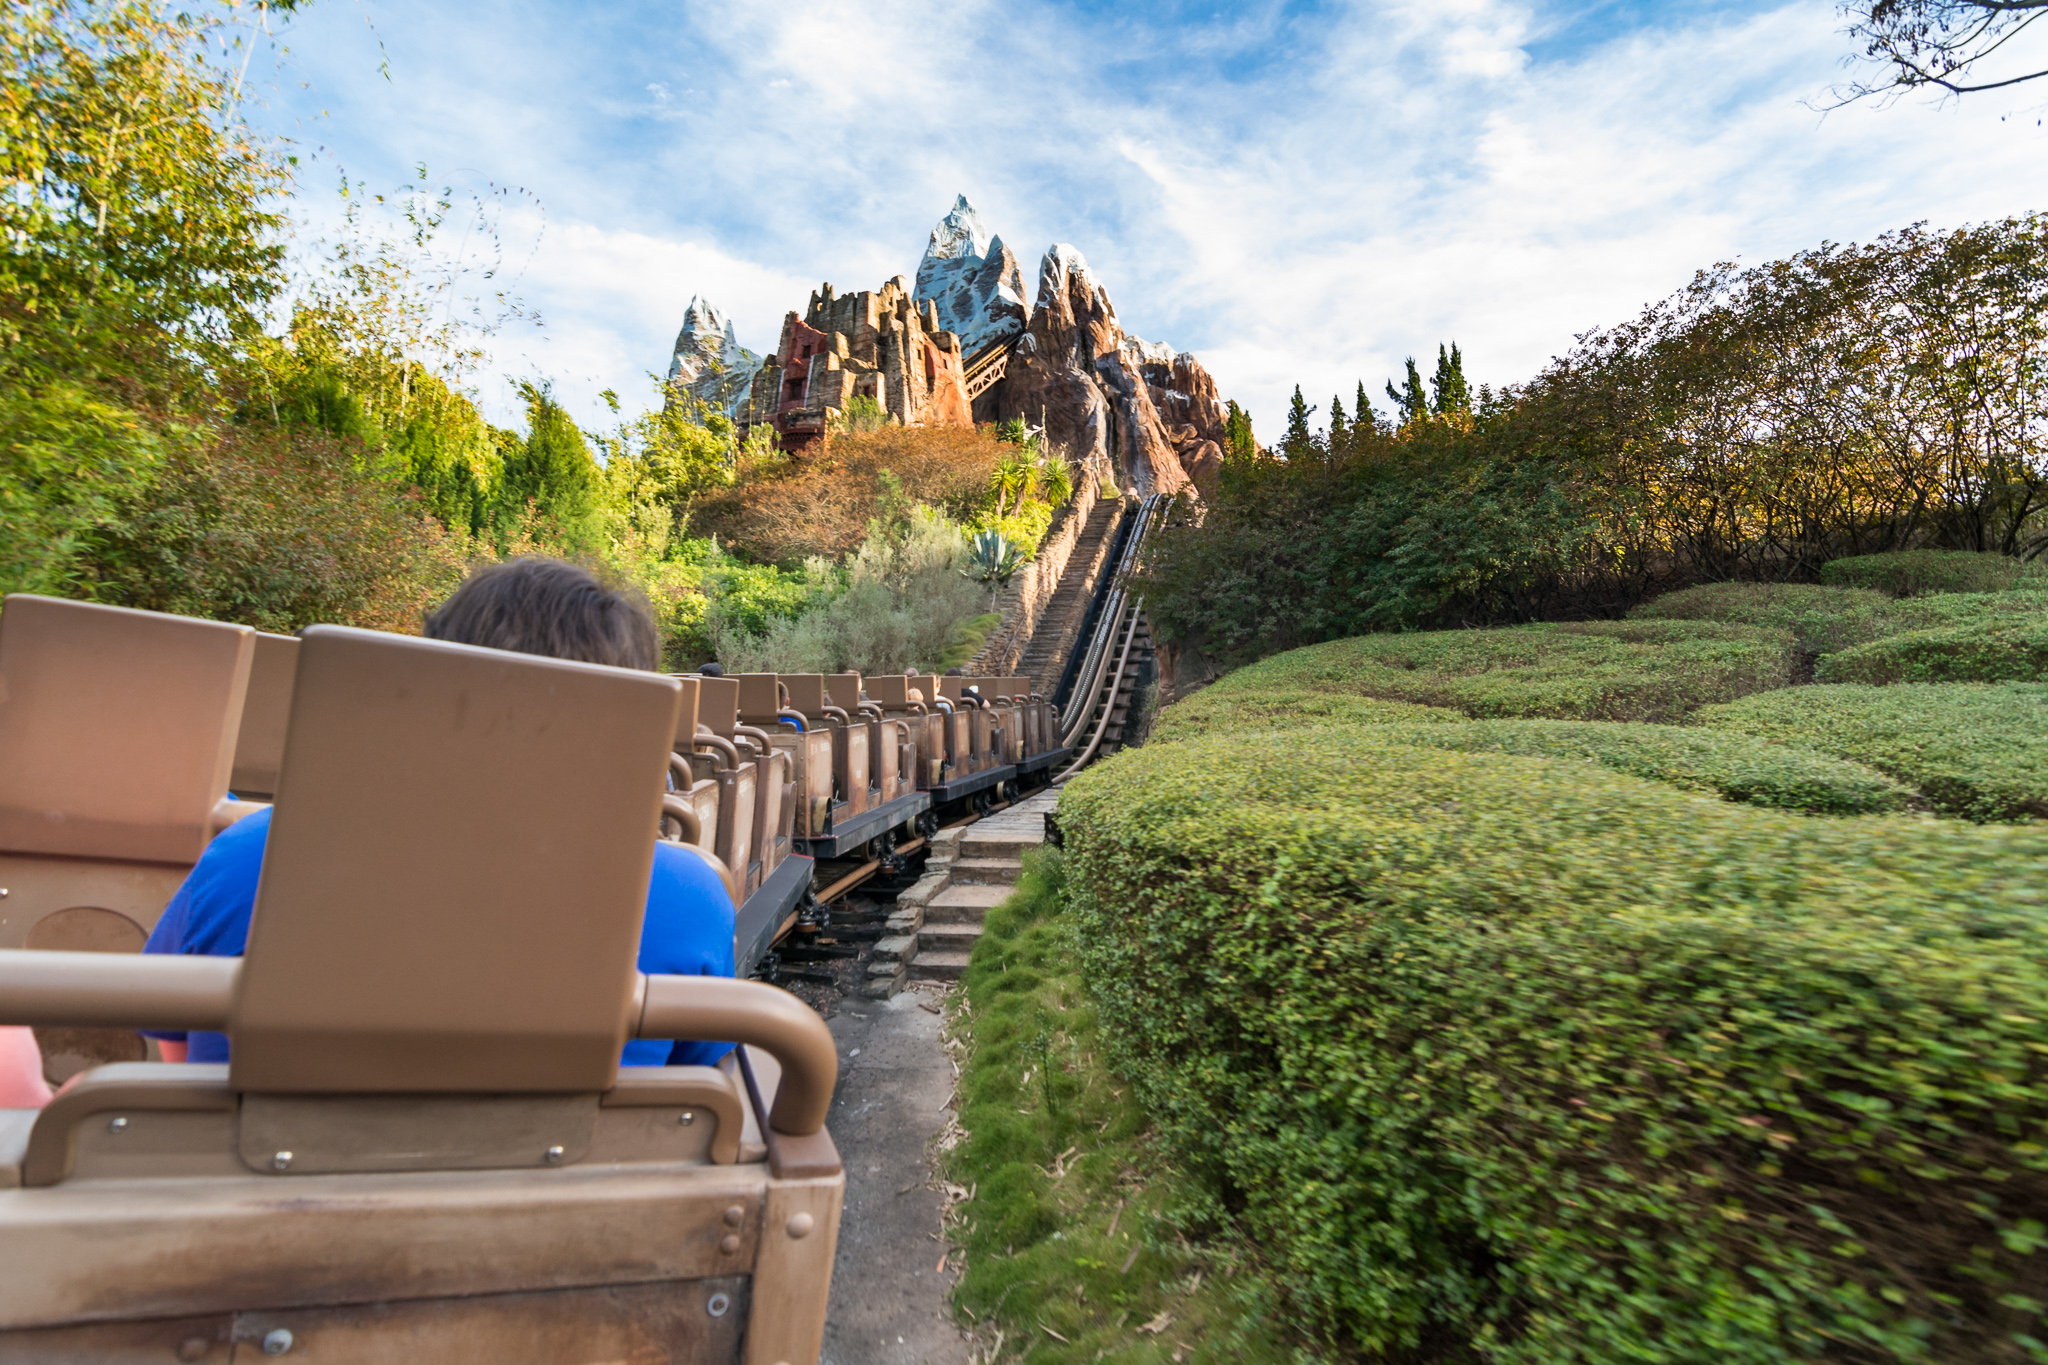 Expedition Everest - First Lift at Disney's Animal Kingdom